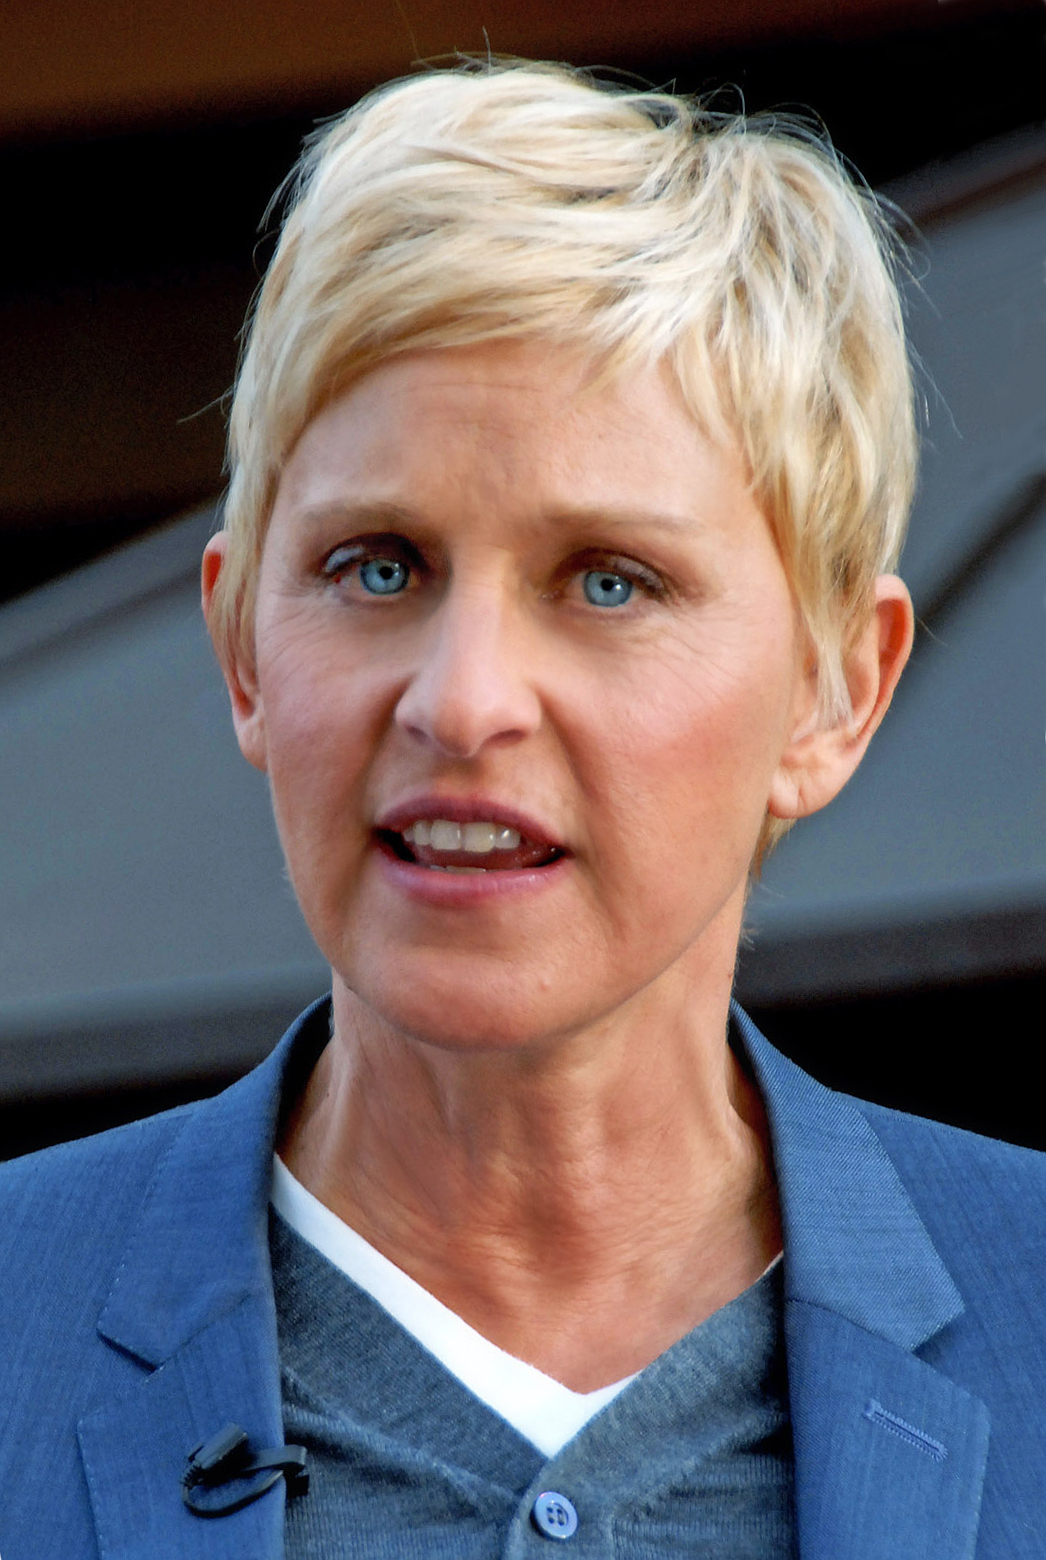 The 62-year old daughter of father Elliott DeGeneres and mother Betty DeGeneres Ellen DeGeneres in 2021 photo. Ellen DeGeneres earned a 70 million dollar salary - leaving the net worth at 285 million in 2021